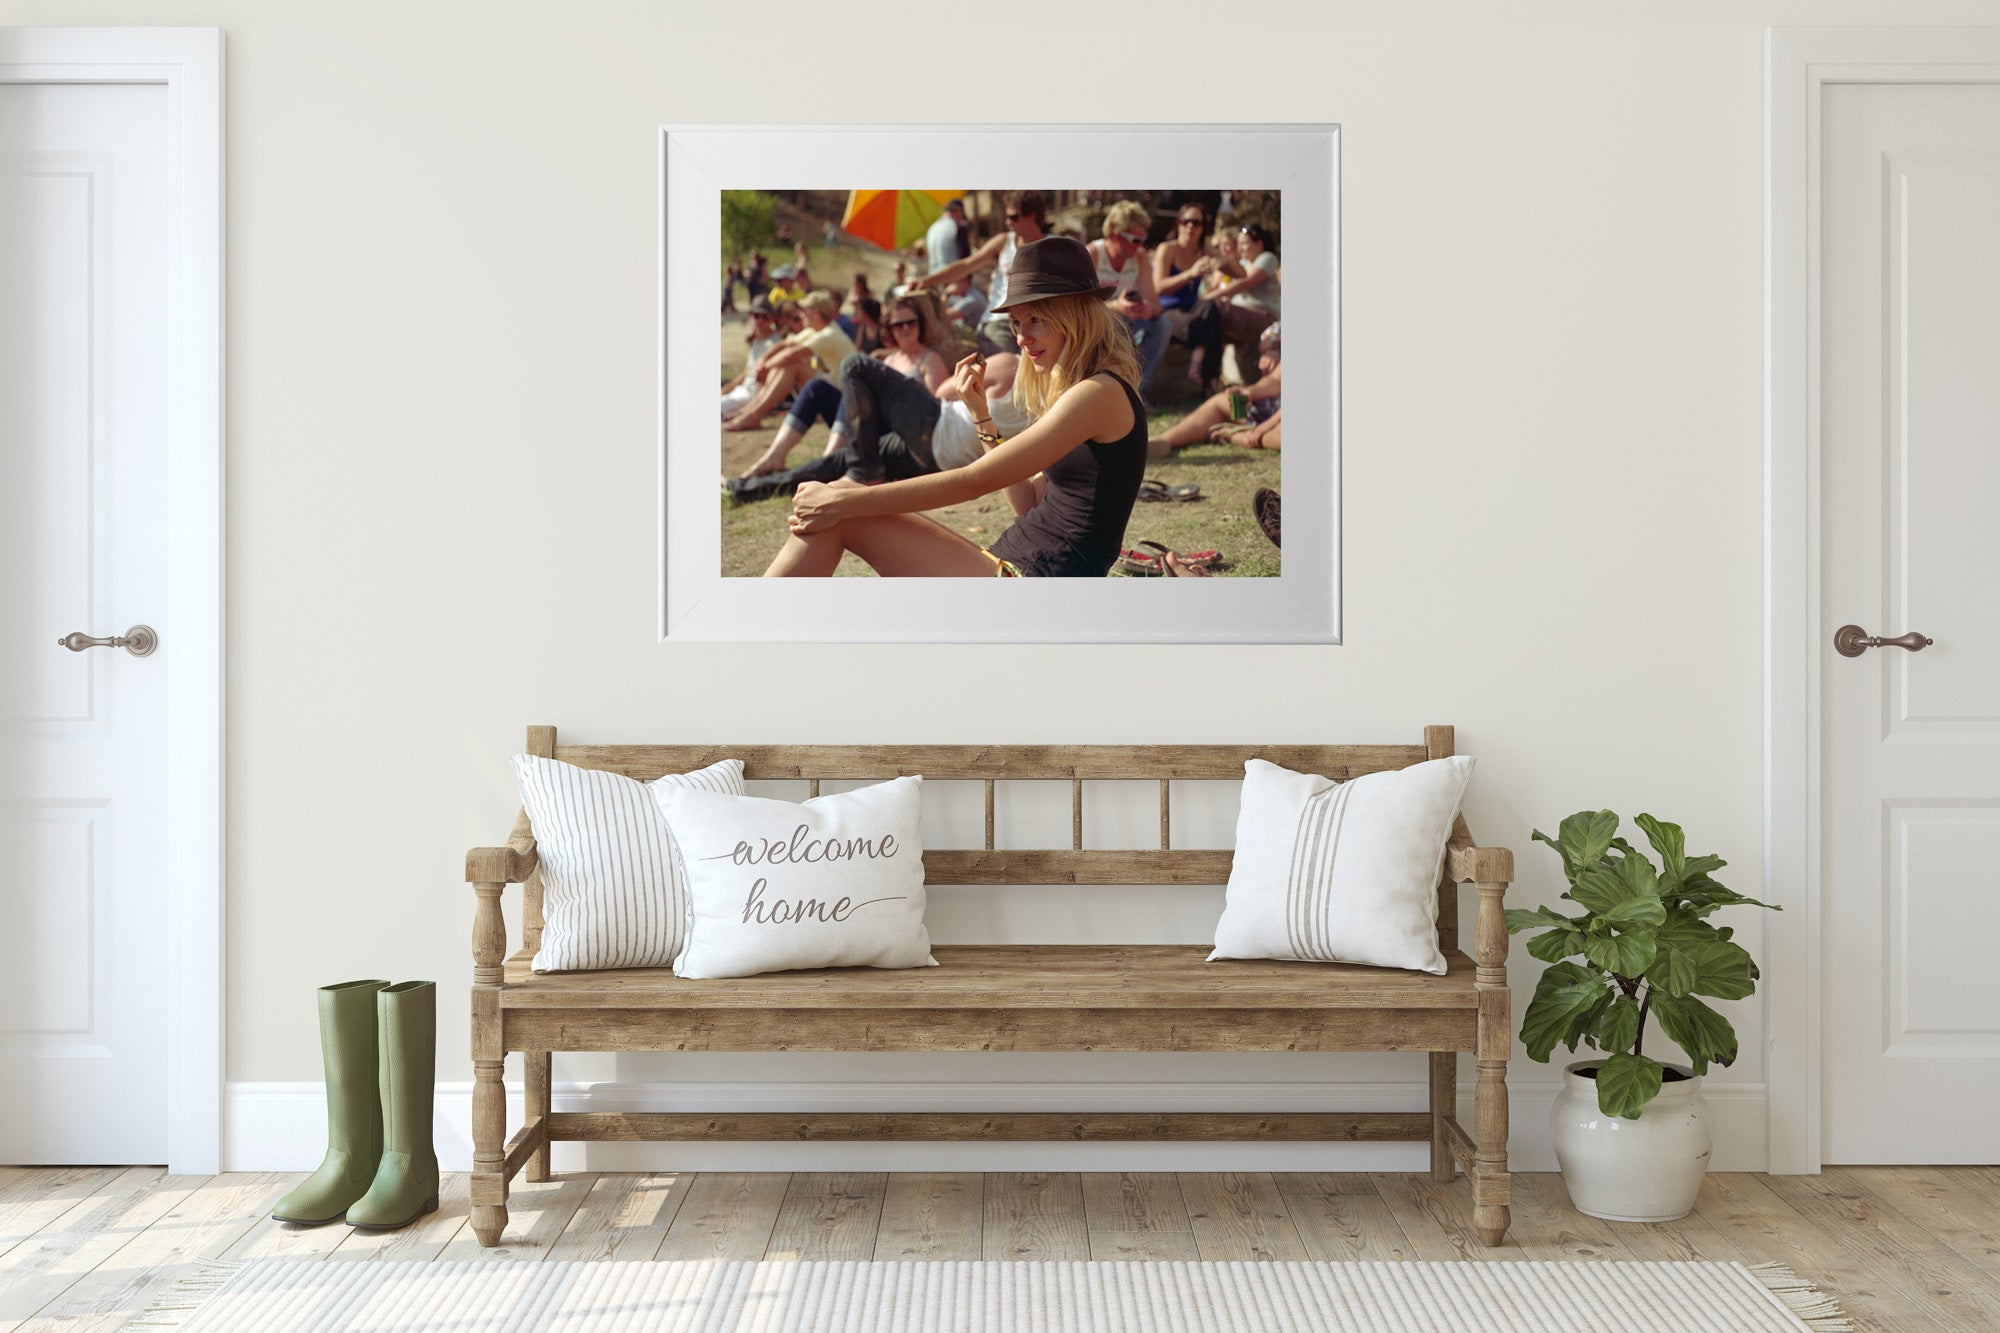 A photograph of a blonde haired girl with a pro pie hat sitting down & looking out at a music festival in the country. She is wearing coloured shorts & a black top. Artwork Prints wall art,  Melbourne travel ,Australia Photographic prints, music festival, Framed artwork, Australian,  Photography, Photography for sale, Film photography, Vintage photo style,  Interior design, Film photography, Pictures,  art, film photography,